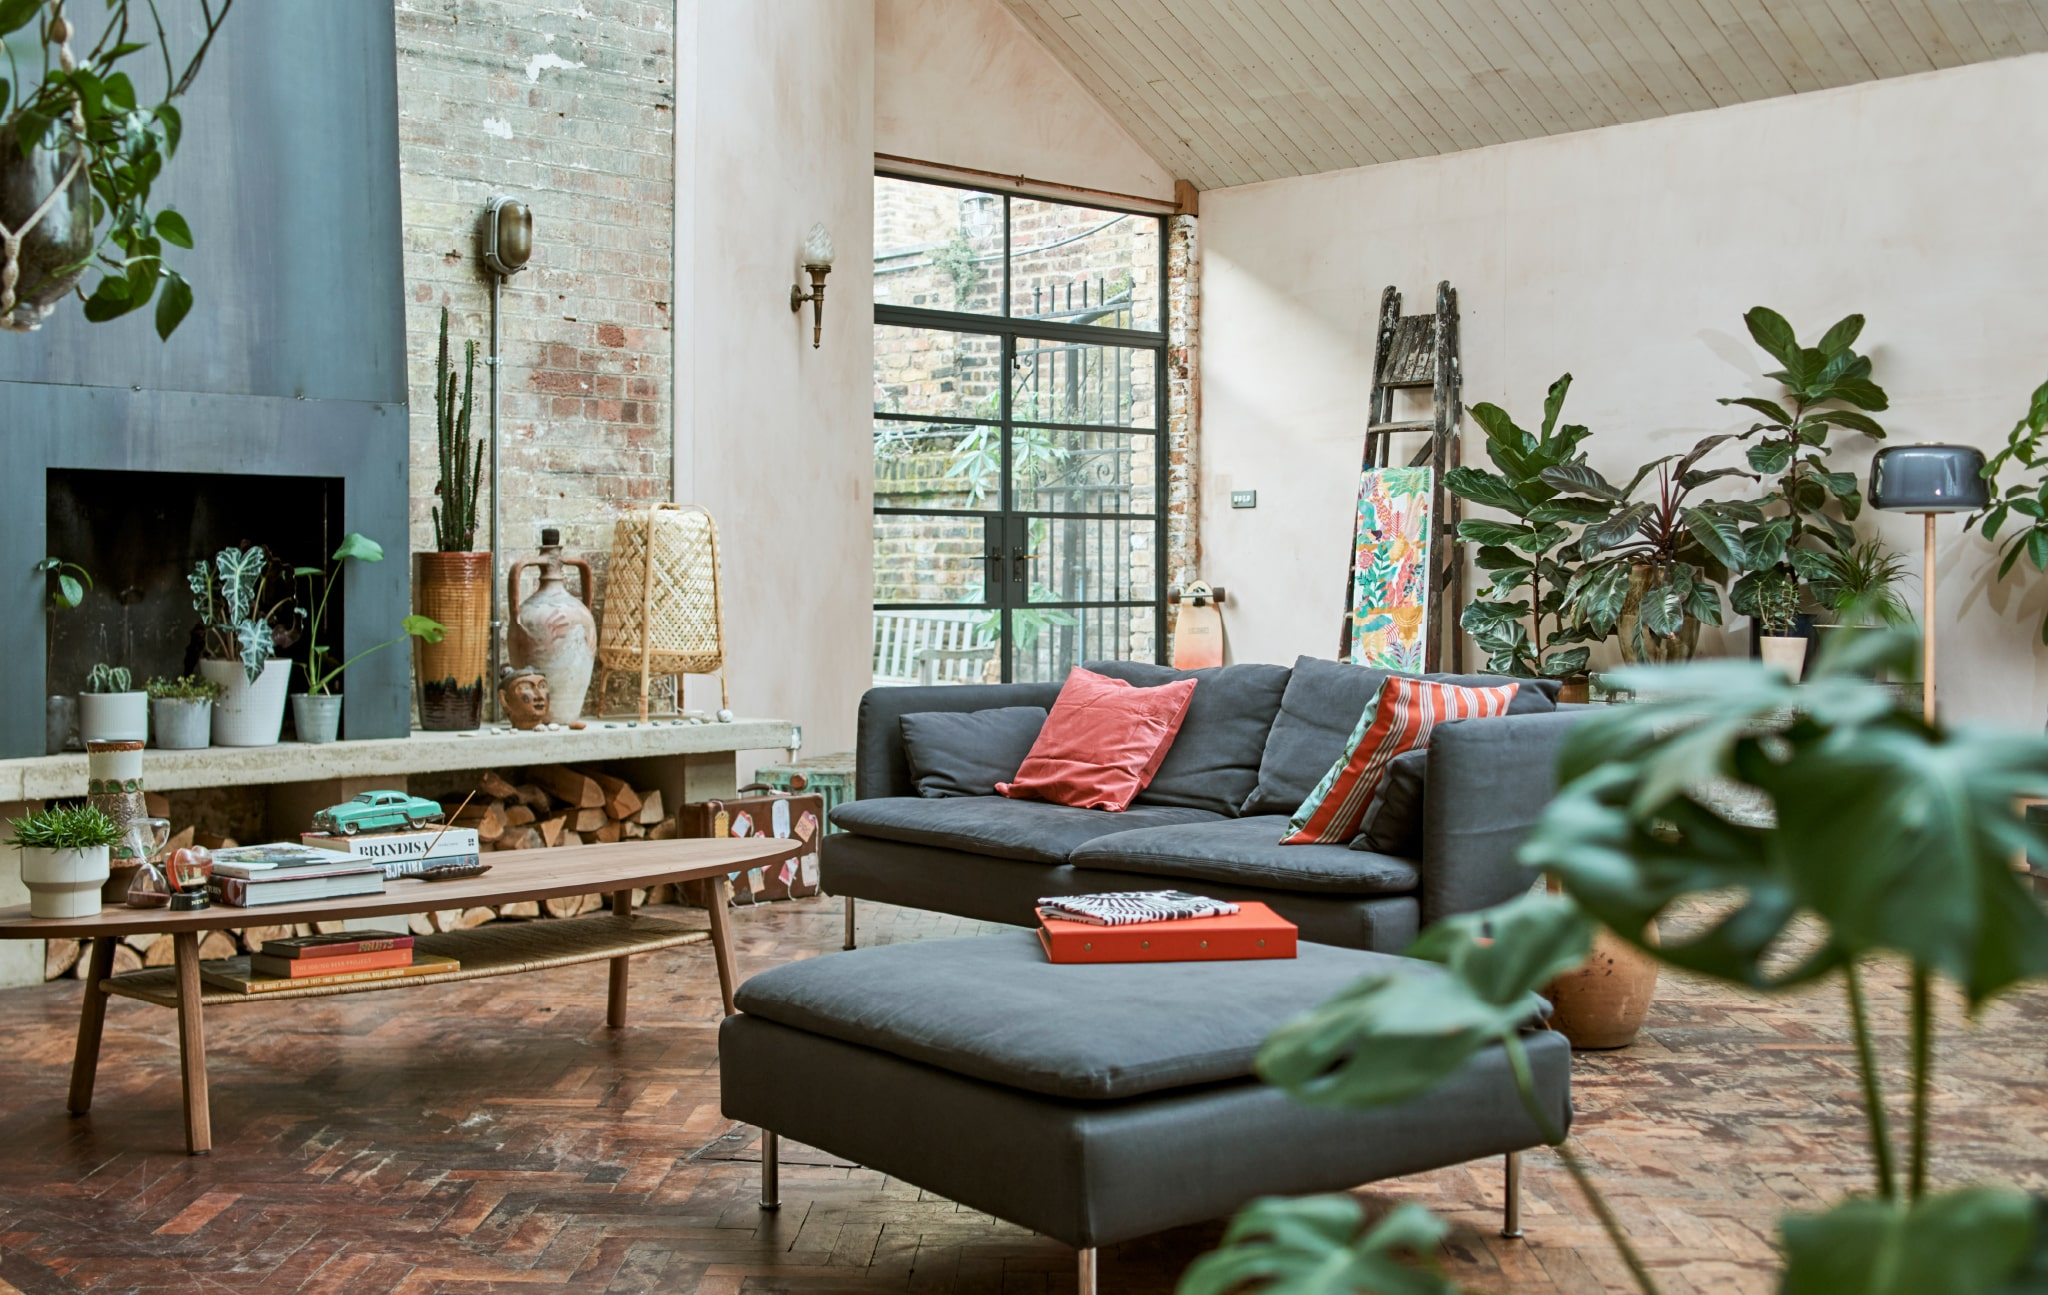 Home visit: a curious collector's happy hideaway